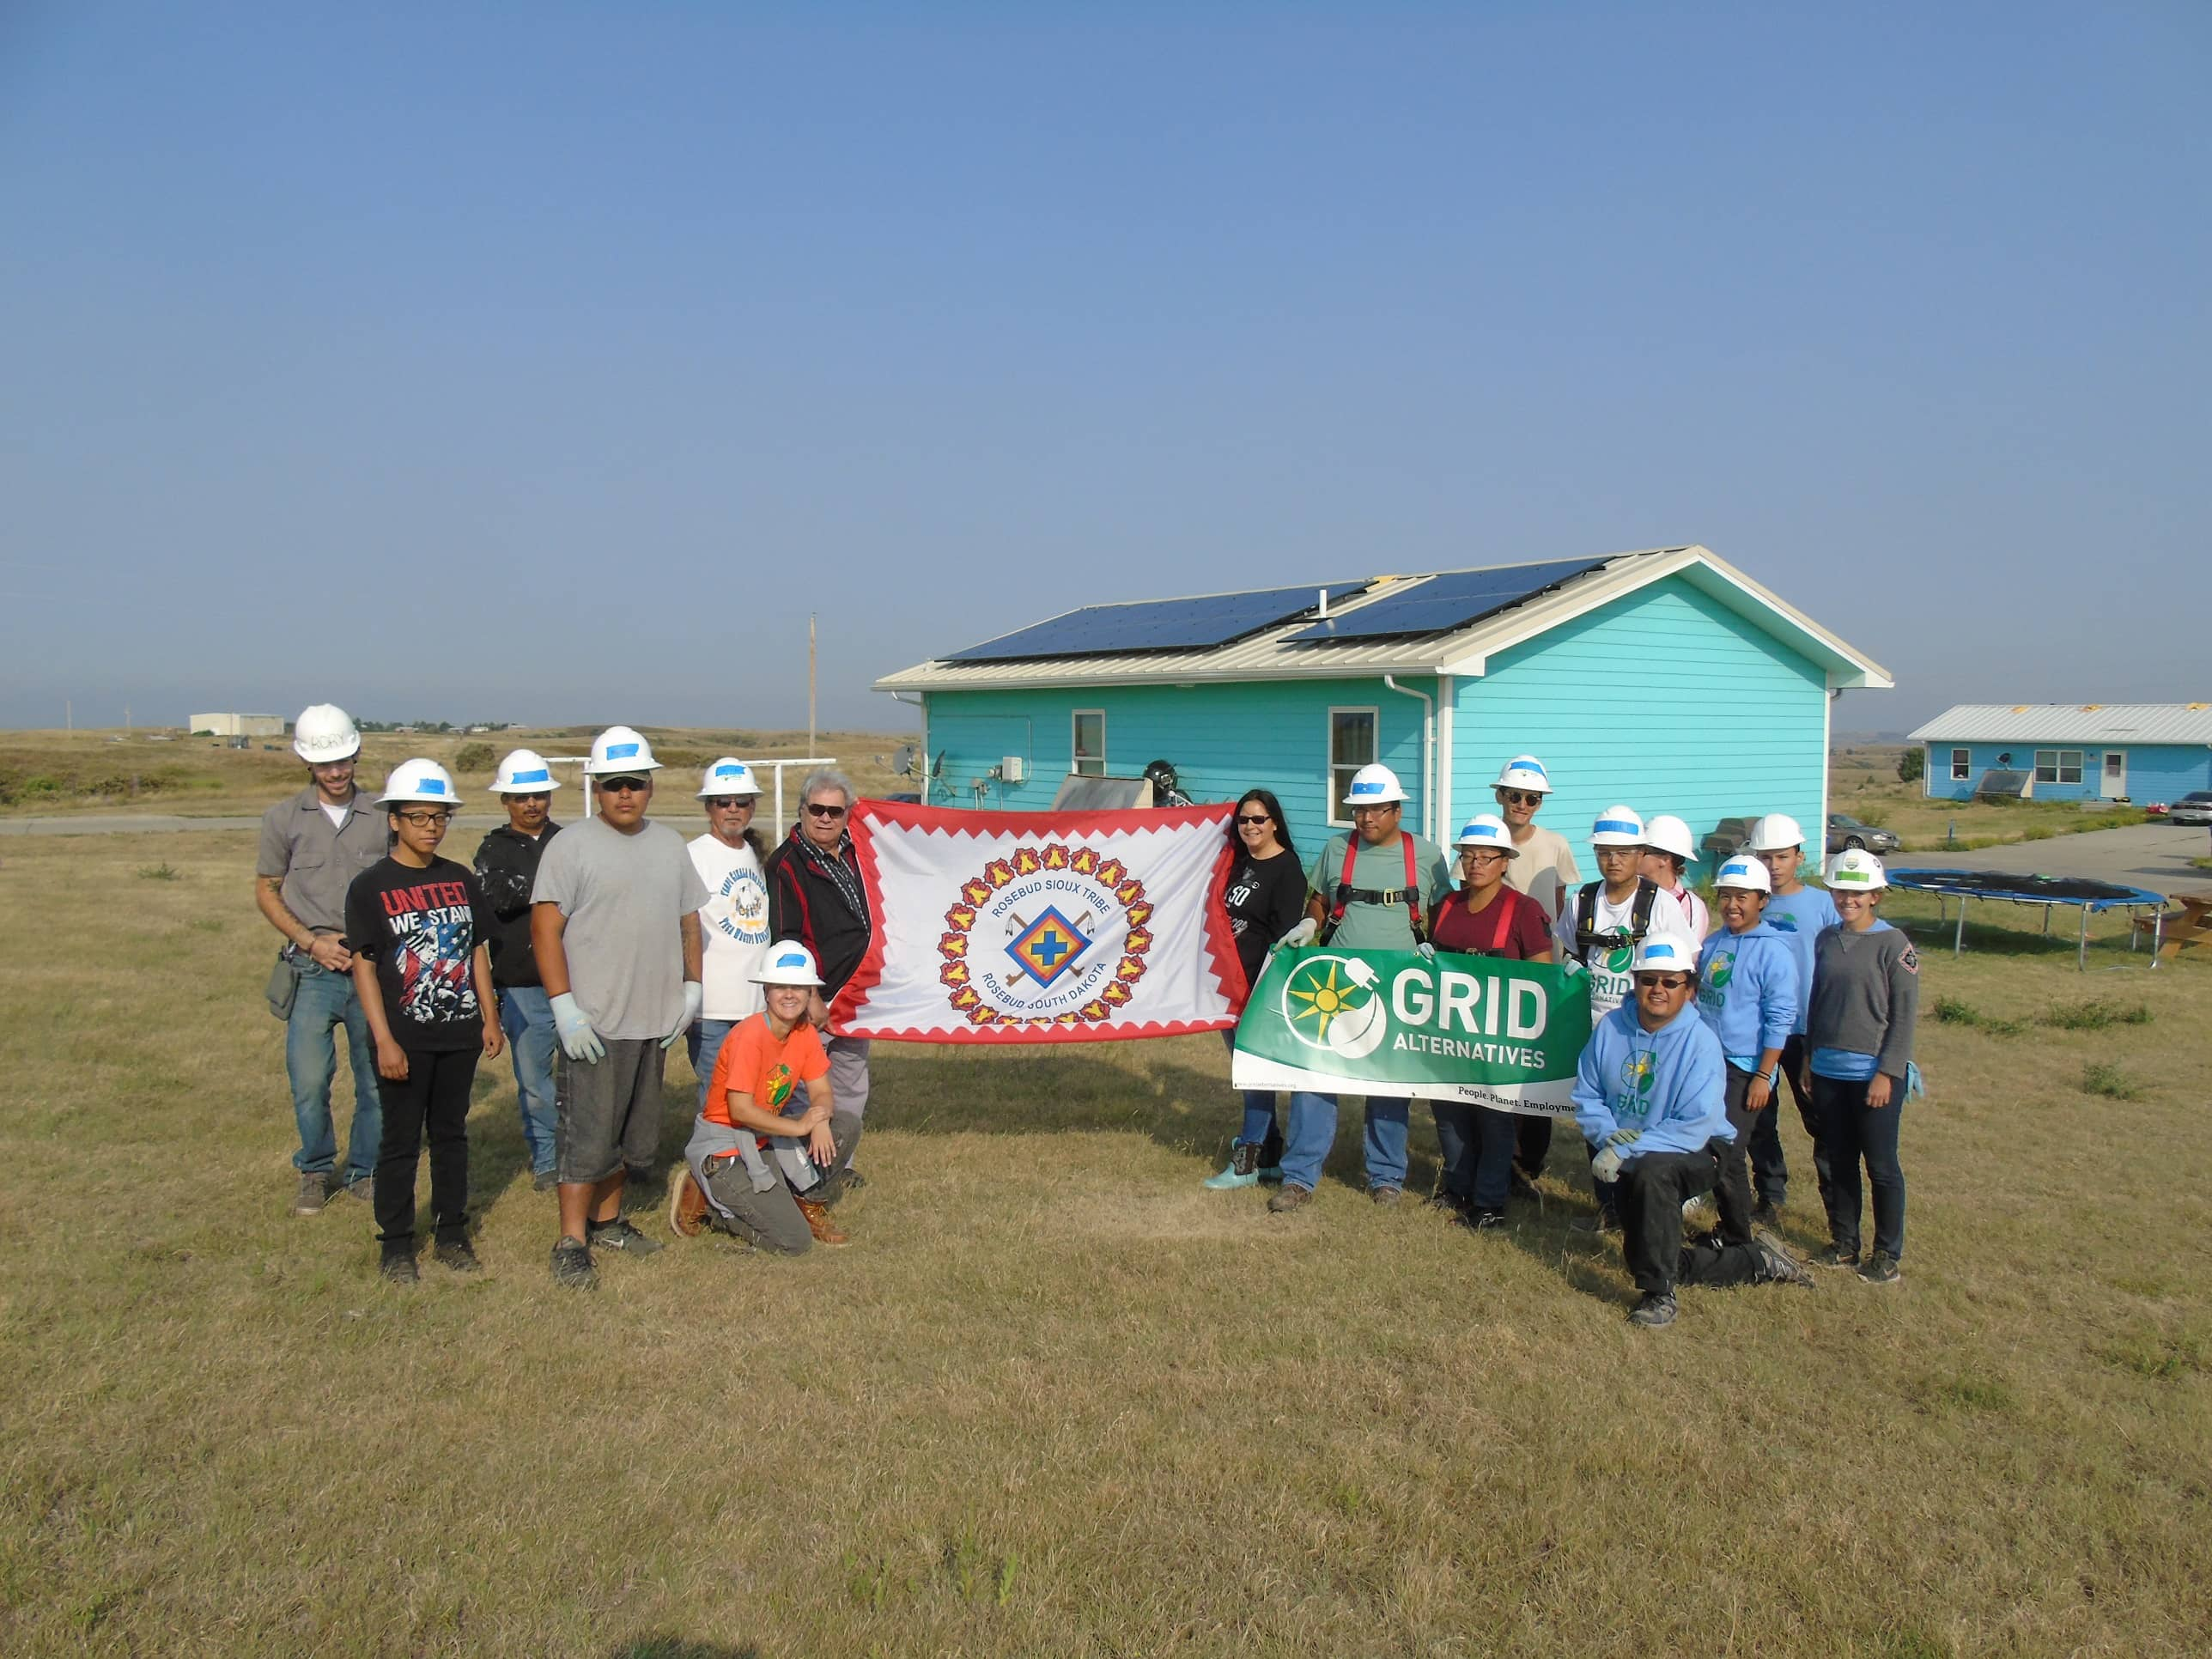 Celebration-with-volunteers-students-Housing-Authority-staff-and-GRID-staff Nonprofit, Feds Partner To Provide Solar On U.S. Tribal Lands